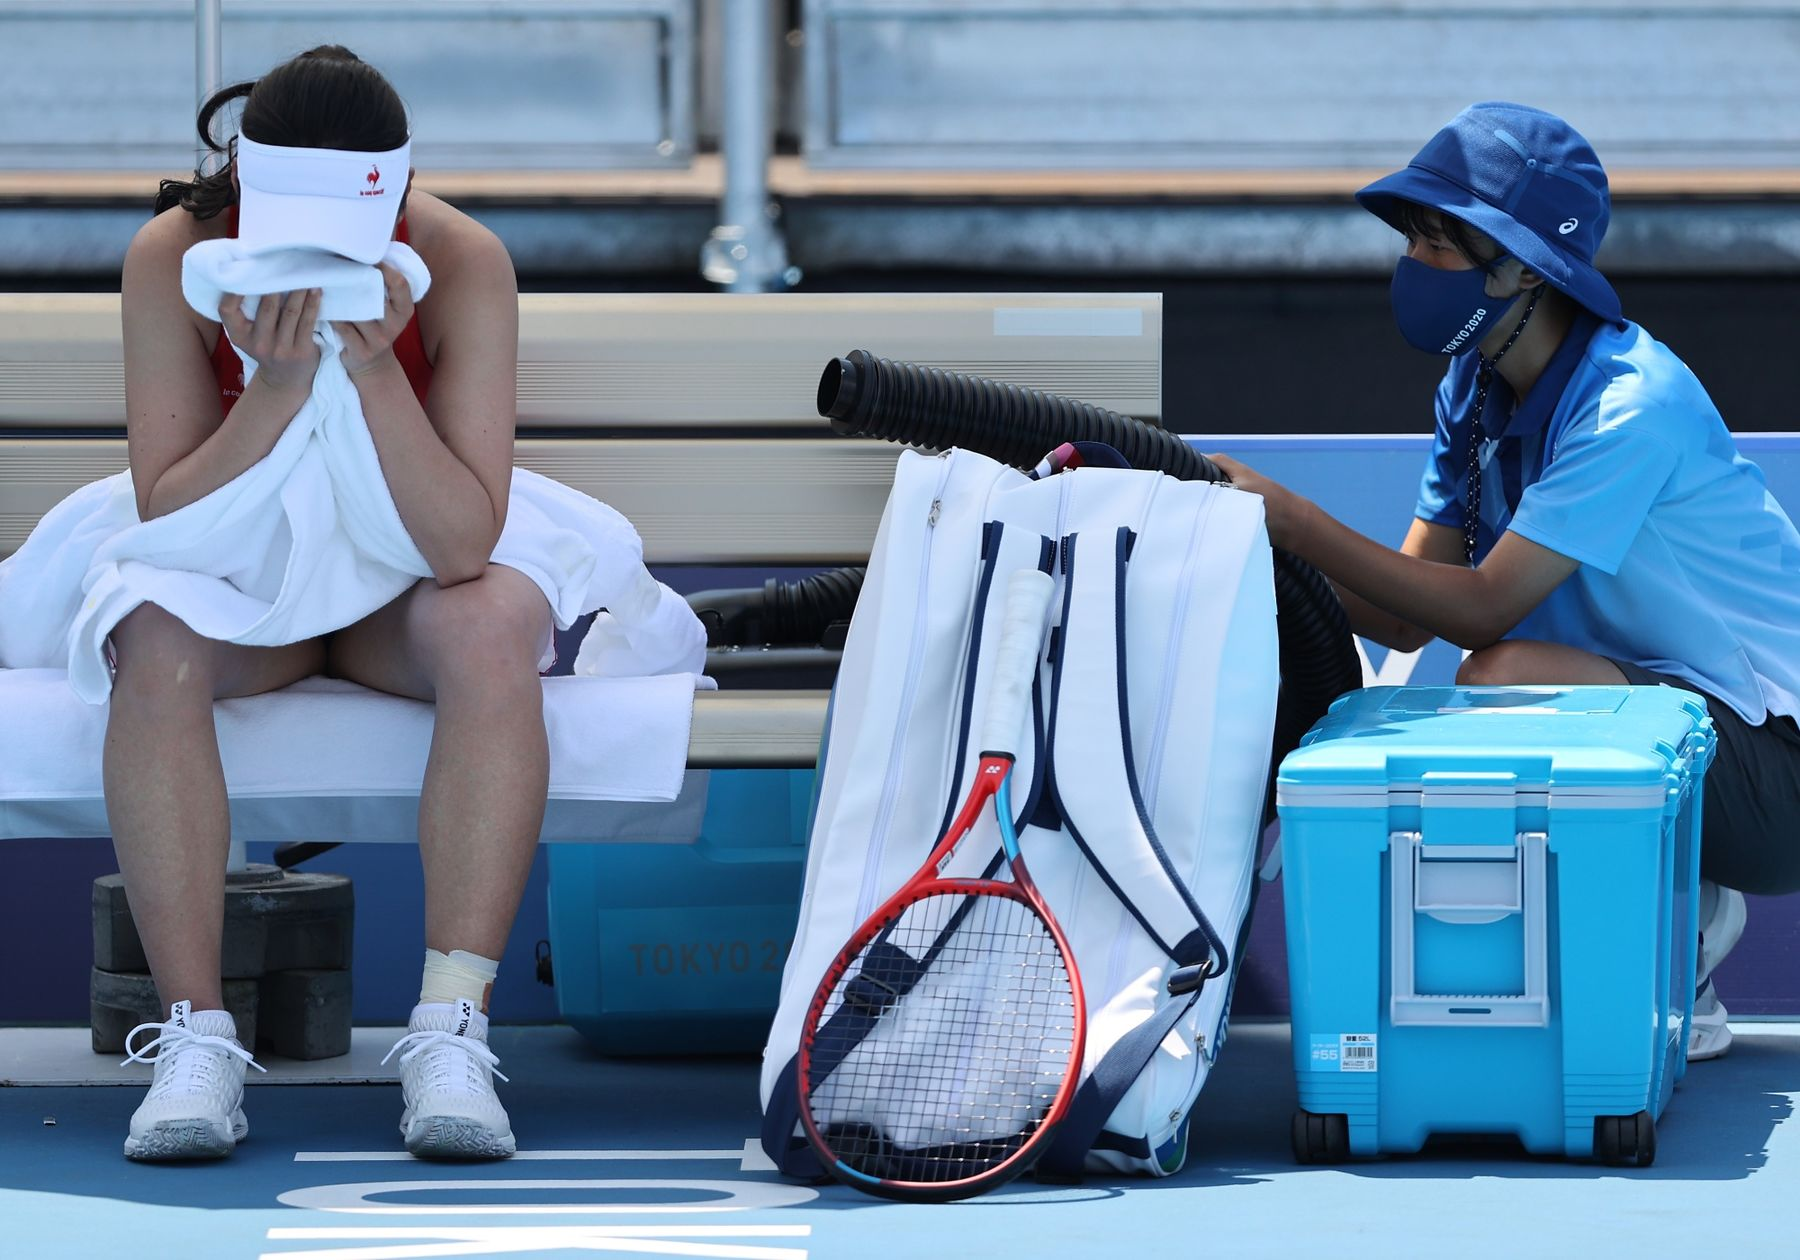 Nao Hibino of Team Japan attempts to cool down between games during her Women's Singles First Round match against Nina Stojanovic of Team Serbia on day one of the Tokyo 2020 Olympic Games at Ariake Tennis Park in Tokyo, onJuly 24